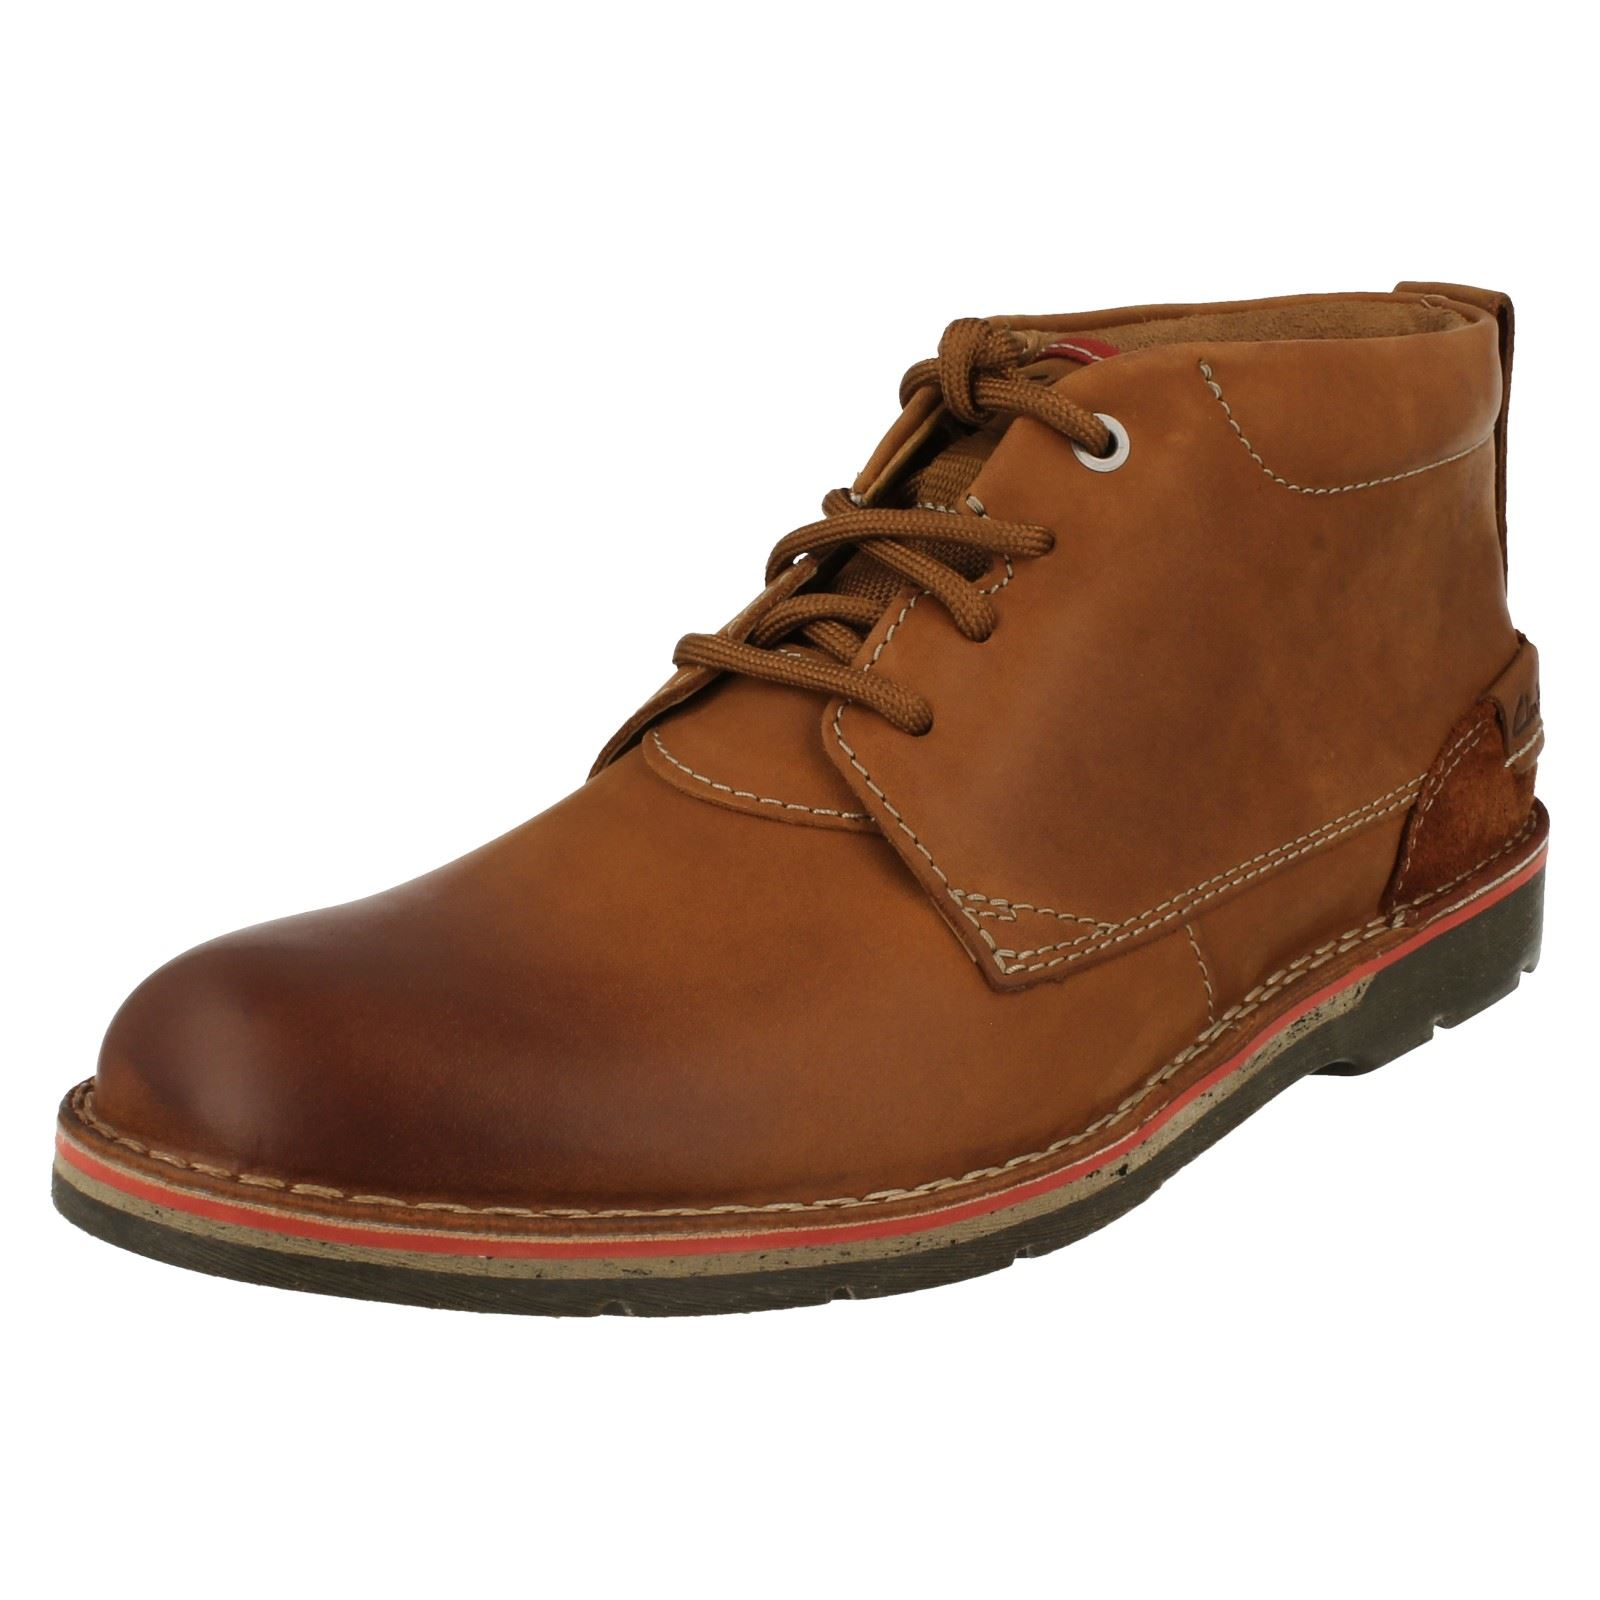 really cheap shoes online outlet footlocker finishline Clarks Edgewick Mid Men's ... Casual Boots outlet visit Bndwaf